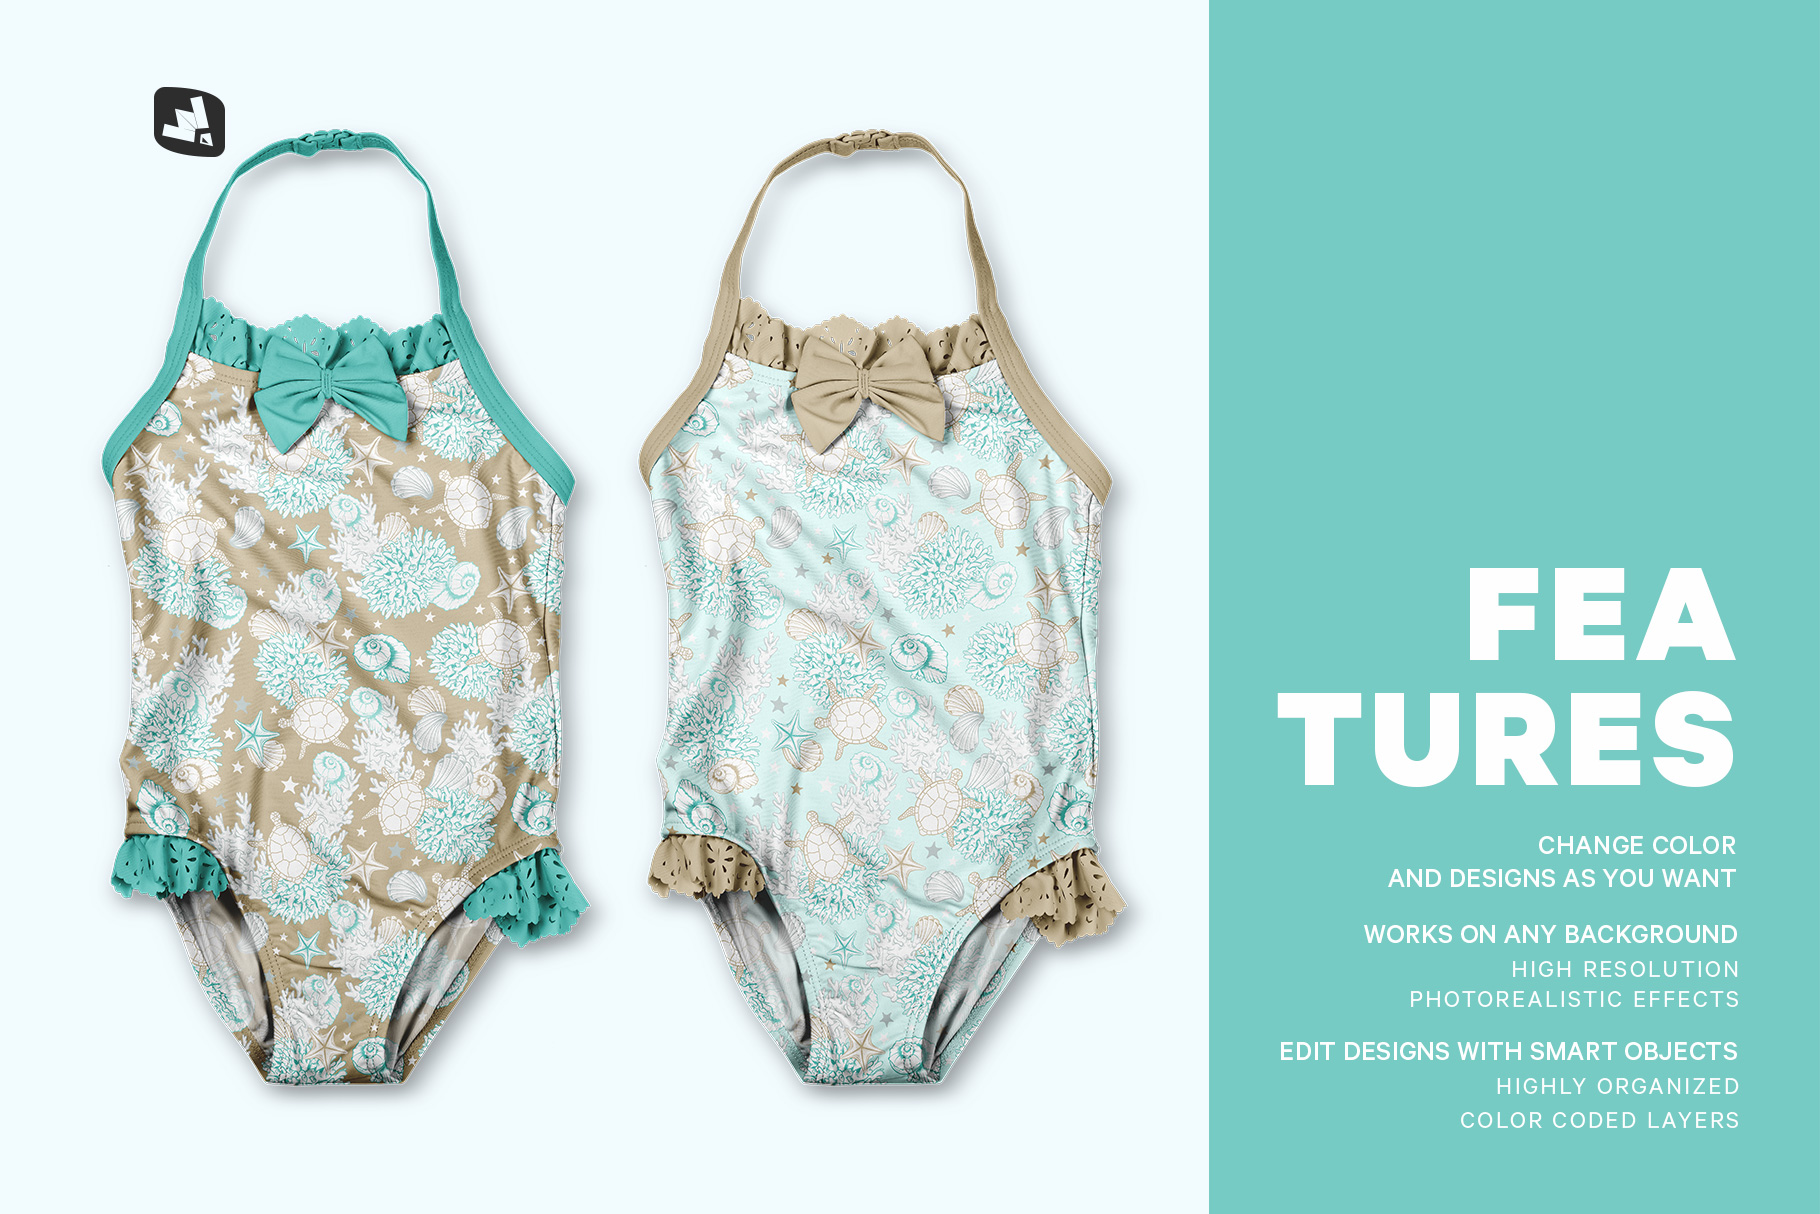 features of the backless baby swimsuit mockup